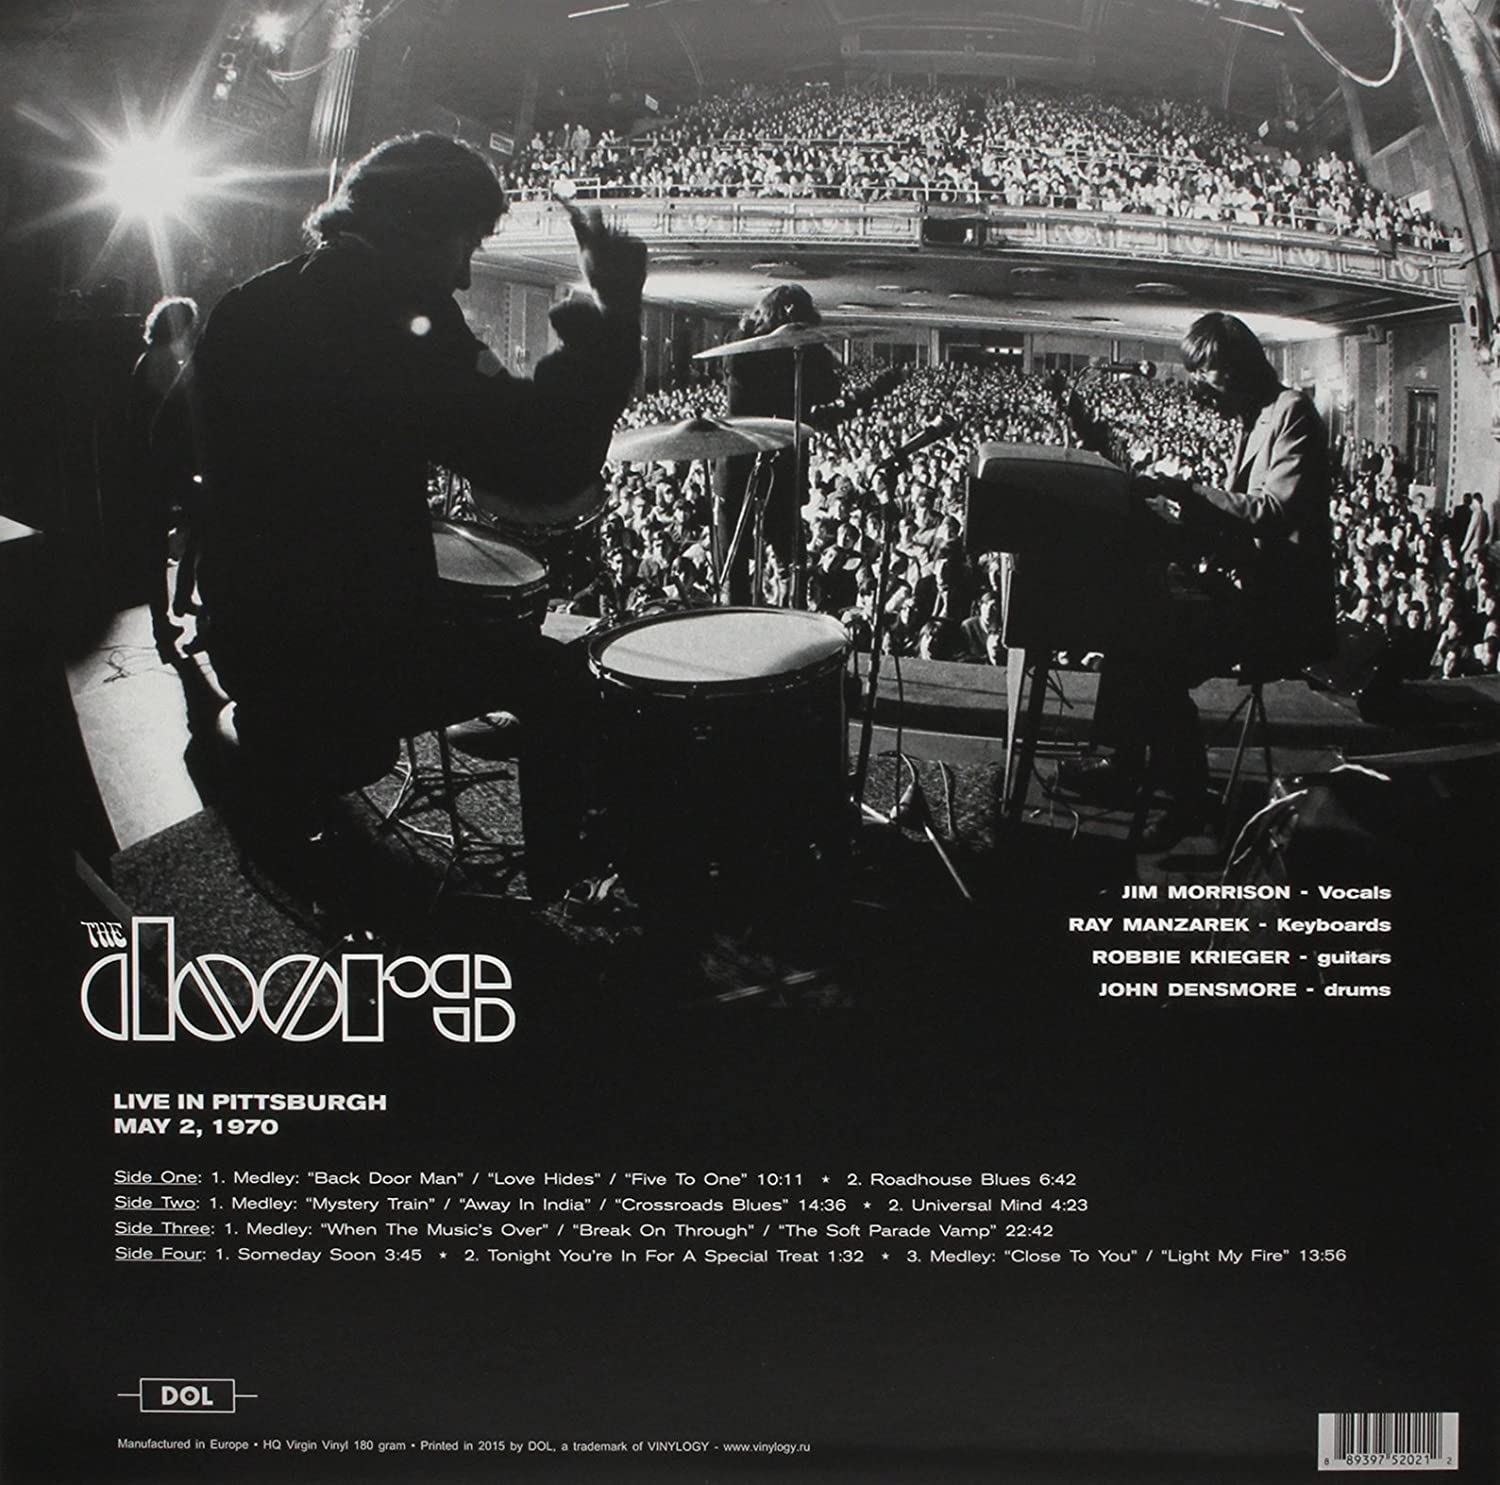 I found this record at a record store. I listened to it from start to finish. If you love the Doors and you want a great vinyl record to add to your ... & The DOORS \u2013 \u201d Live in Pittsburgh Civic Arena \u201d 2nd May 1970 | The ...